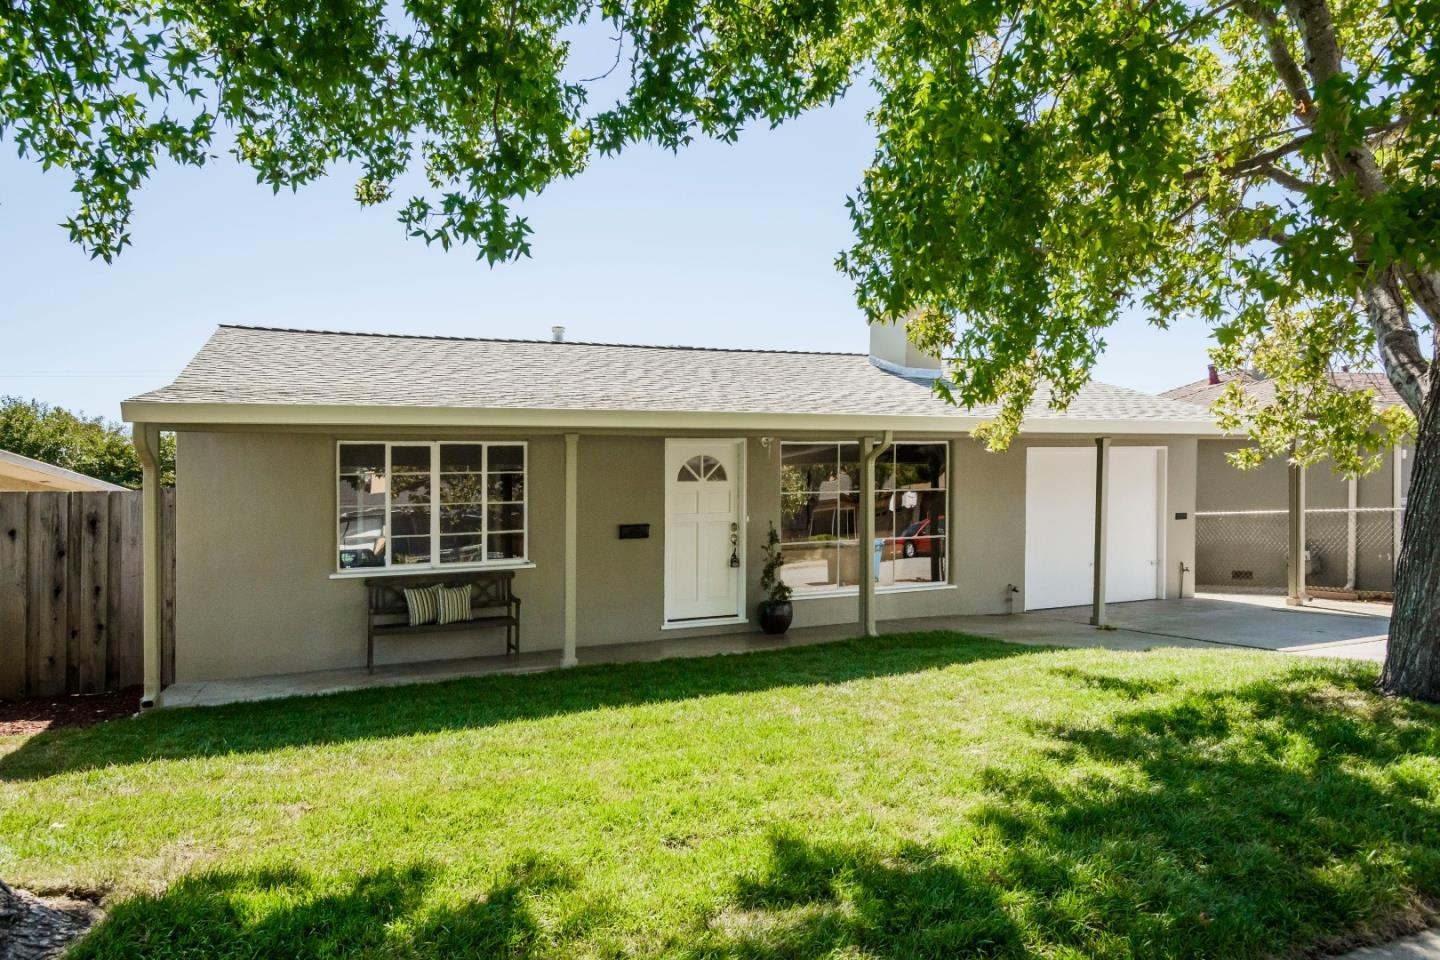 Additional photo for property listing at 3956 Oneill Drive  San Mateo, カリフォルニア 94403 アメリカ合衆国